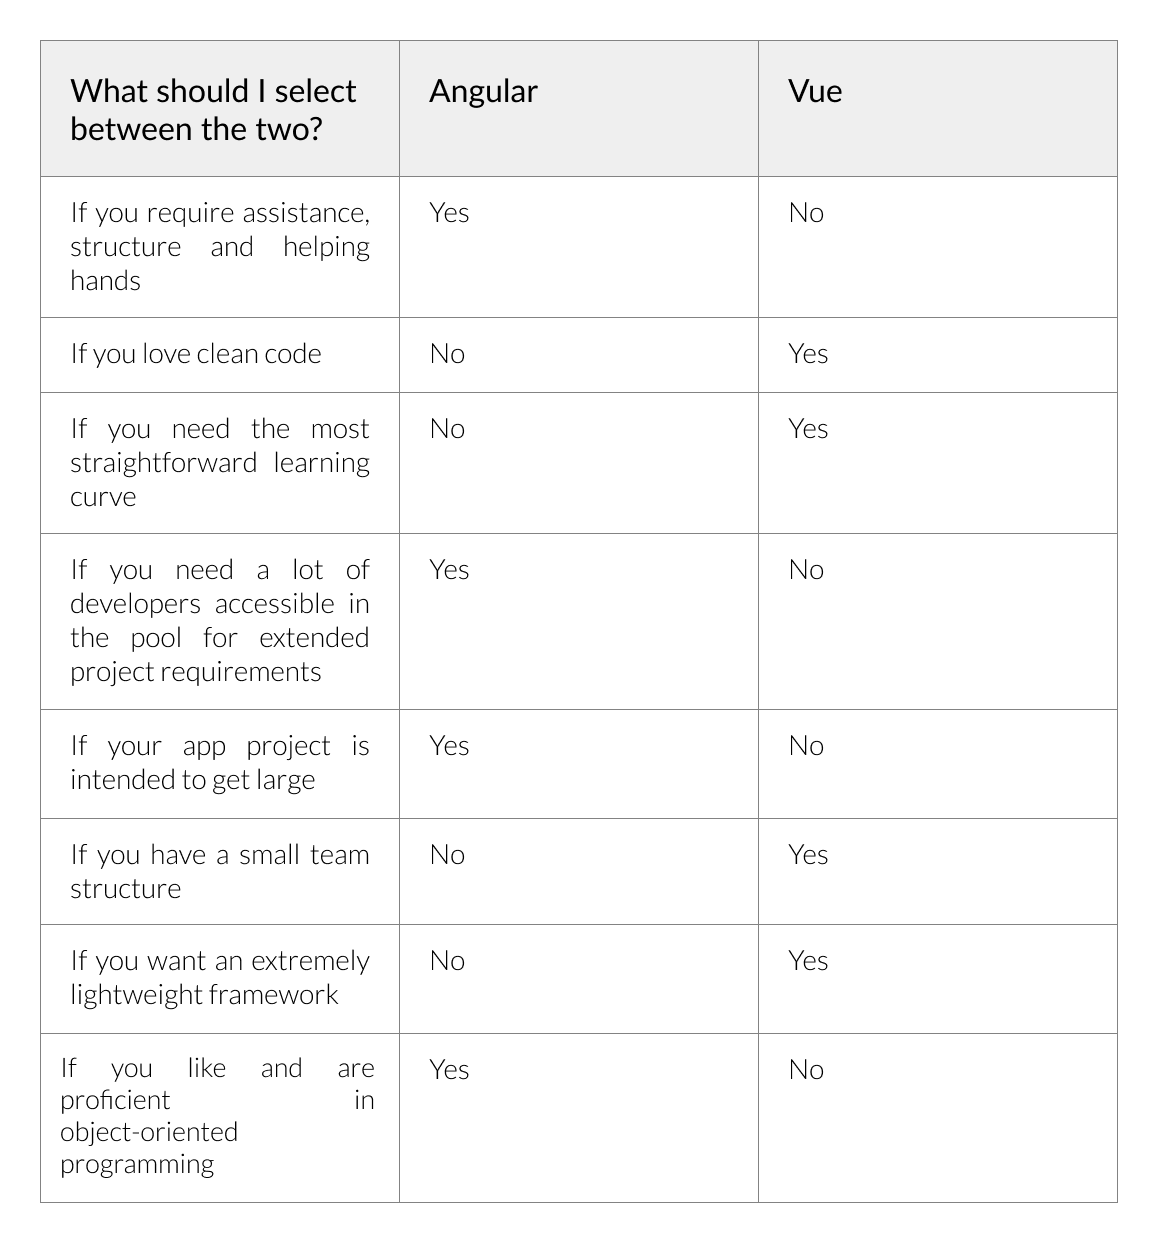 differences between Angular and Vue